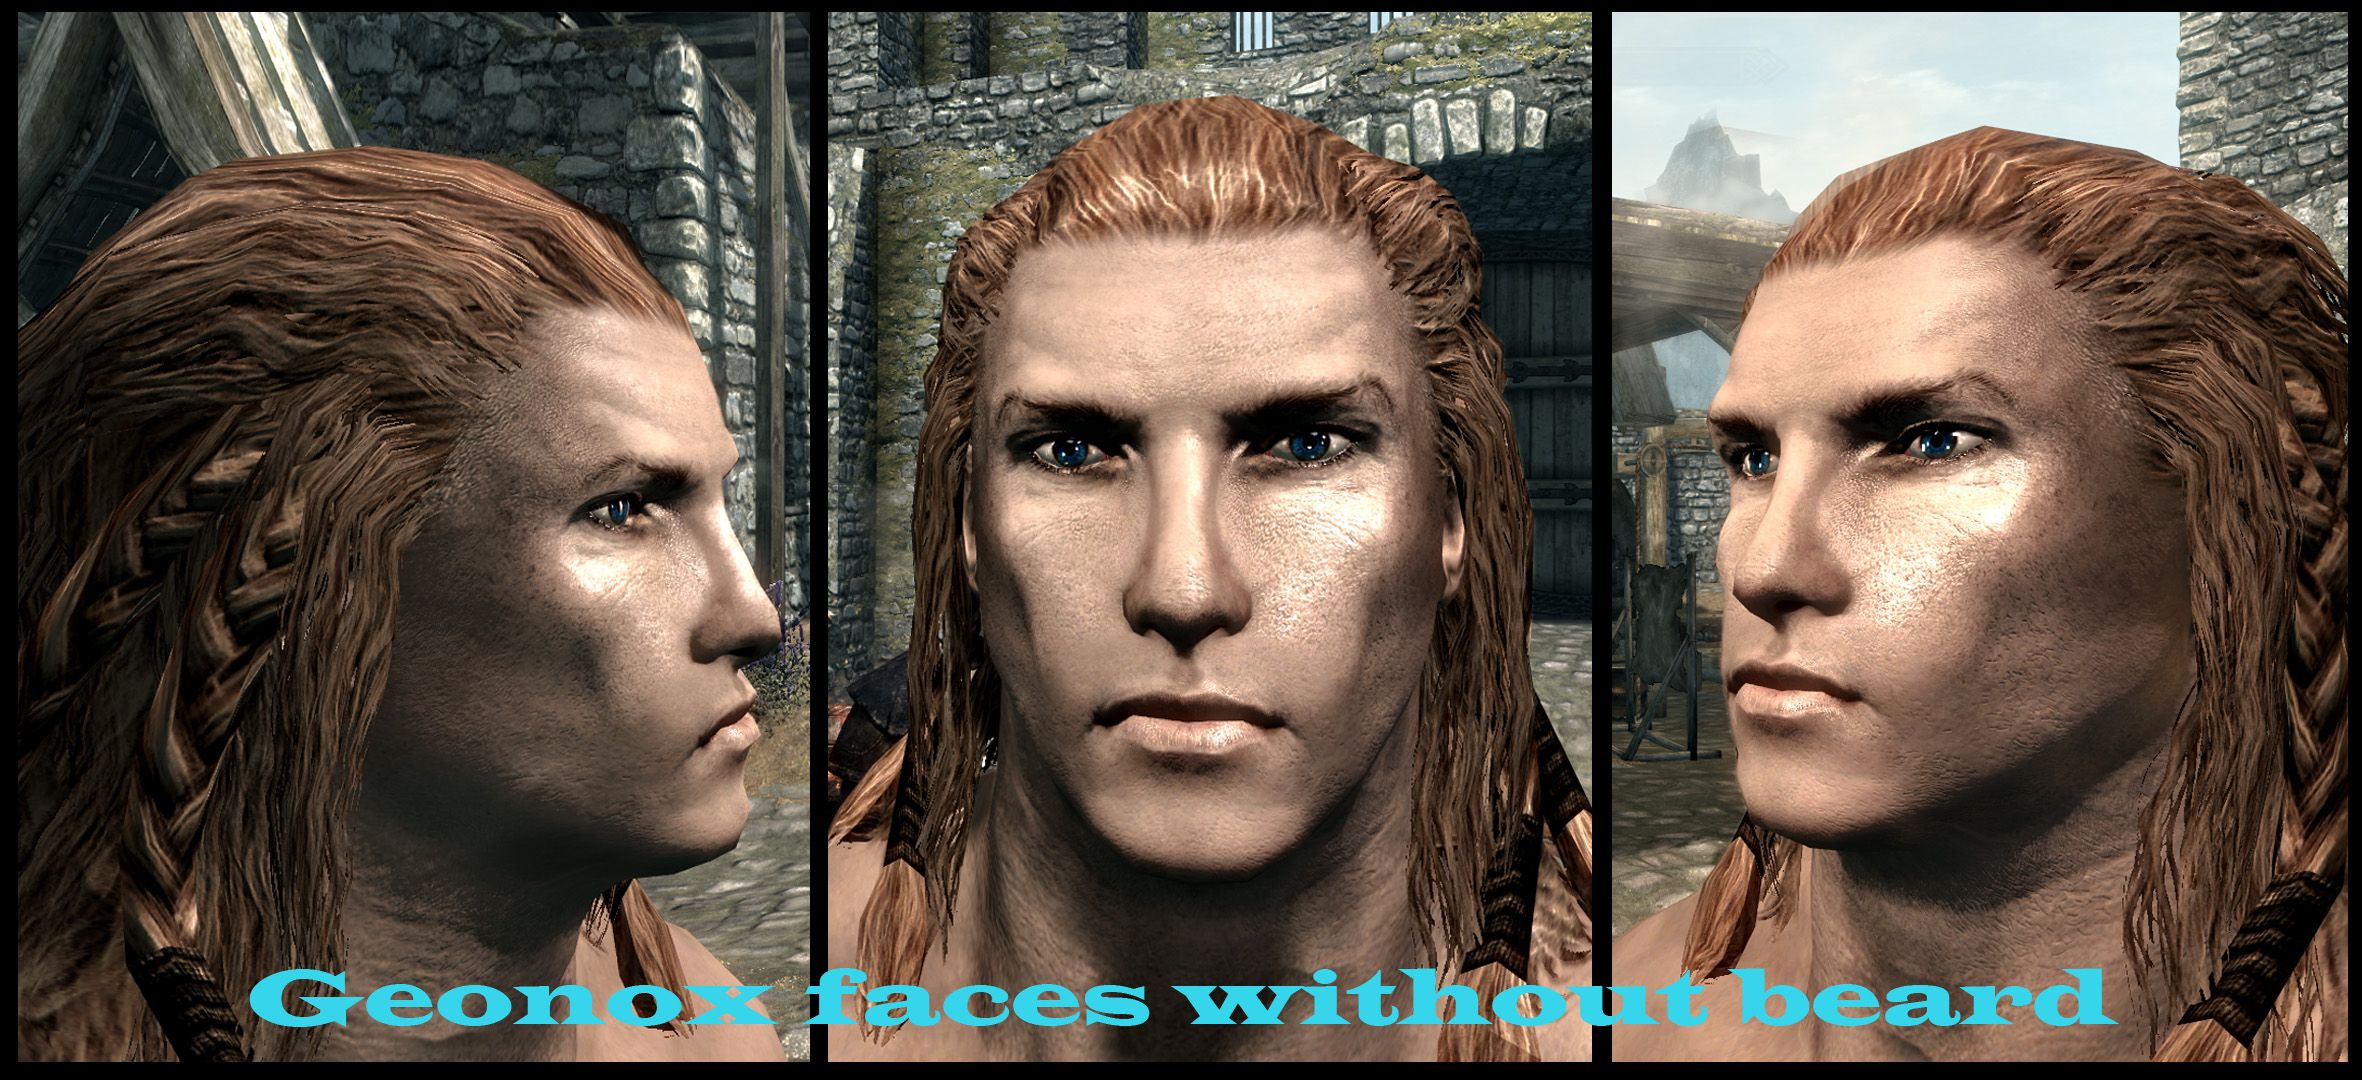 Better Males Beautiful Nudes And Faces New Hairstyles At Skyrim